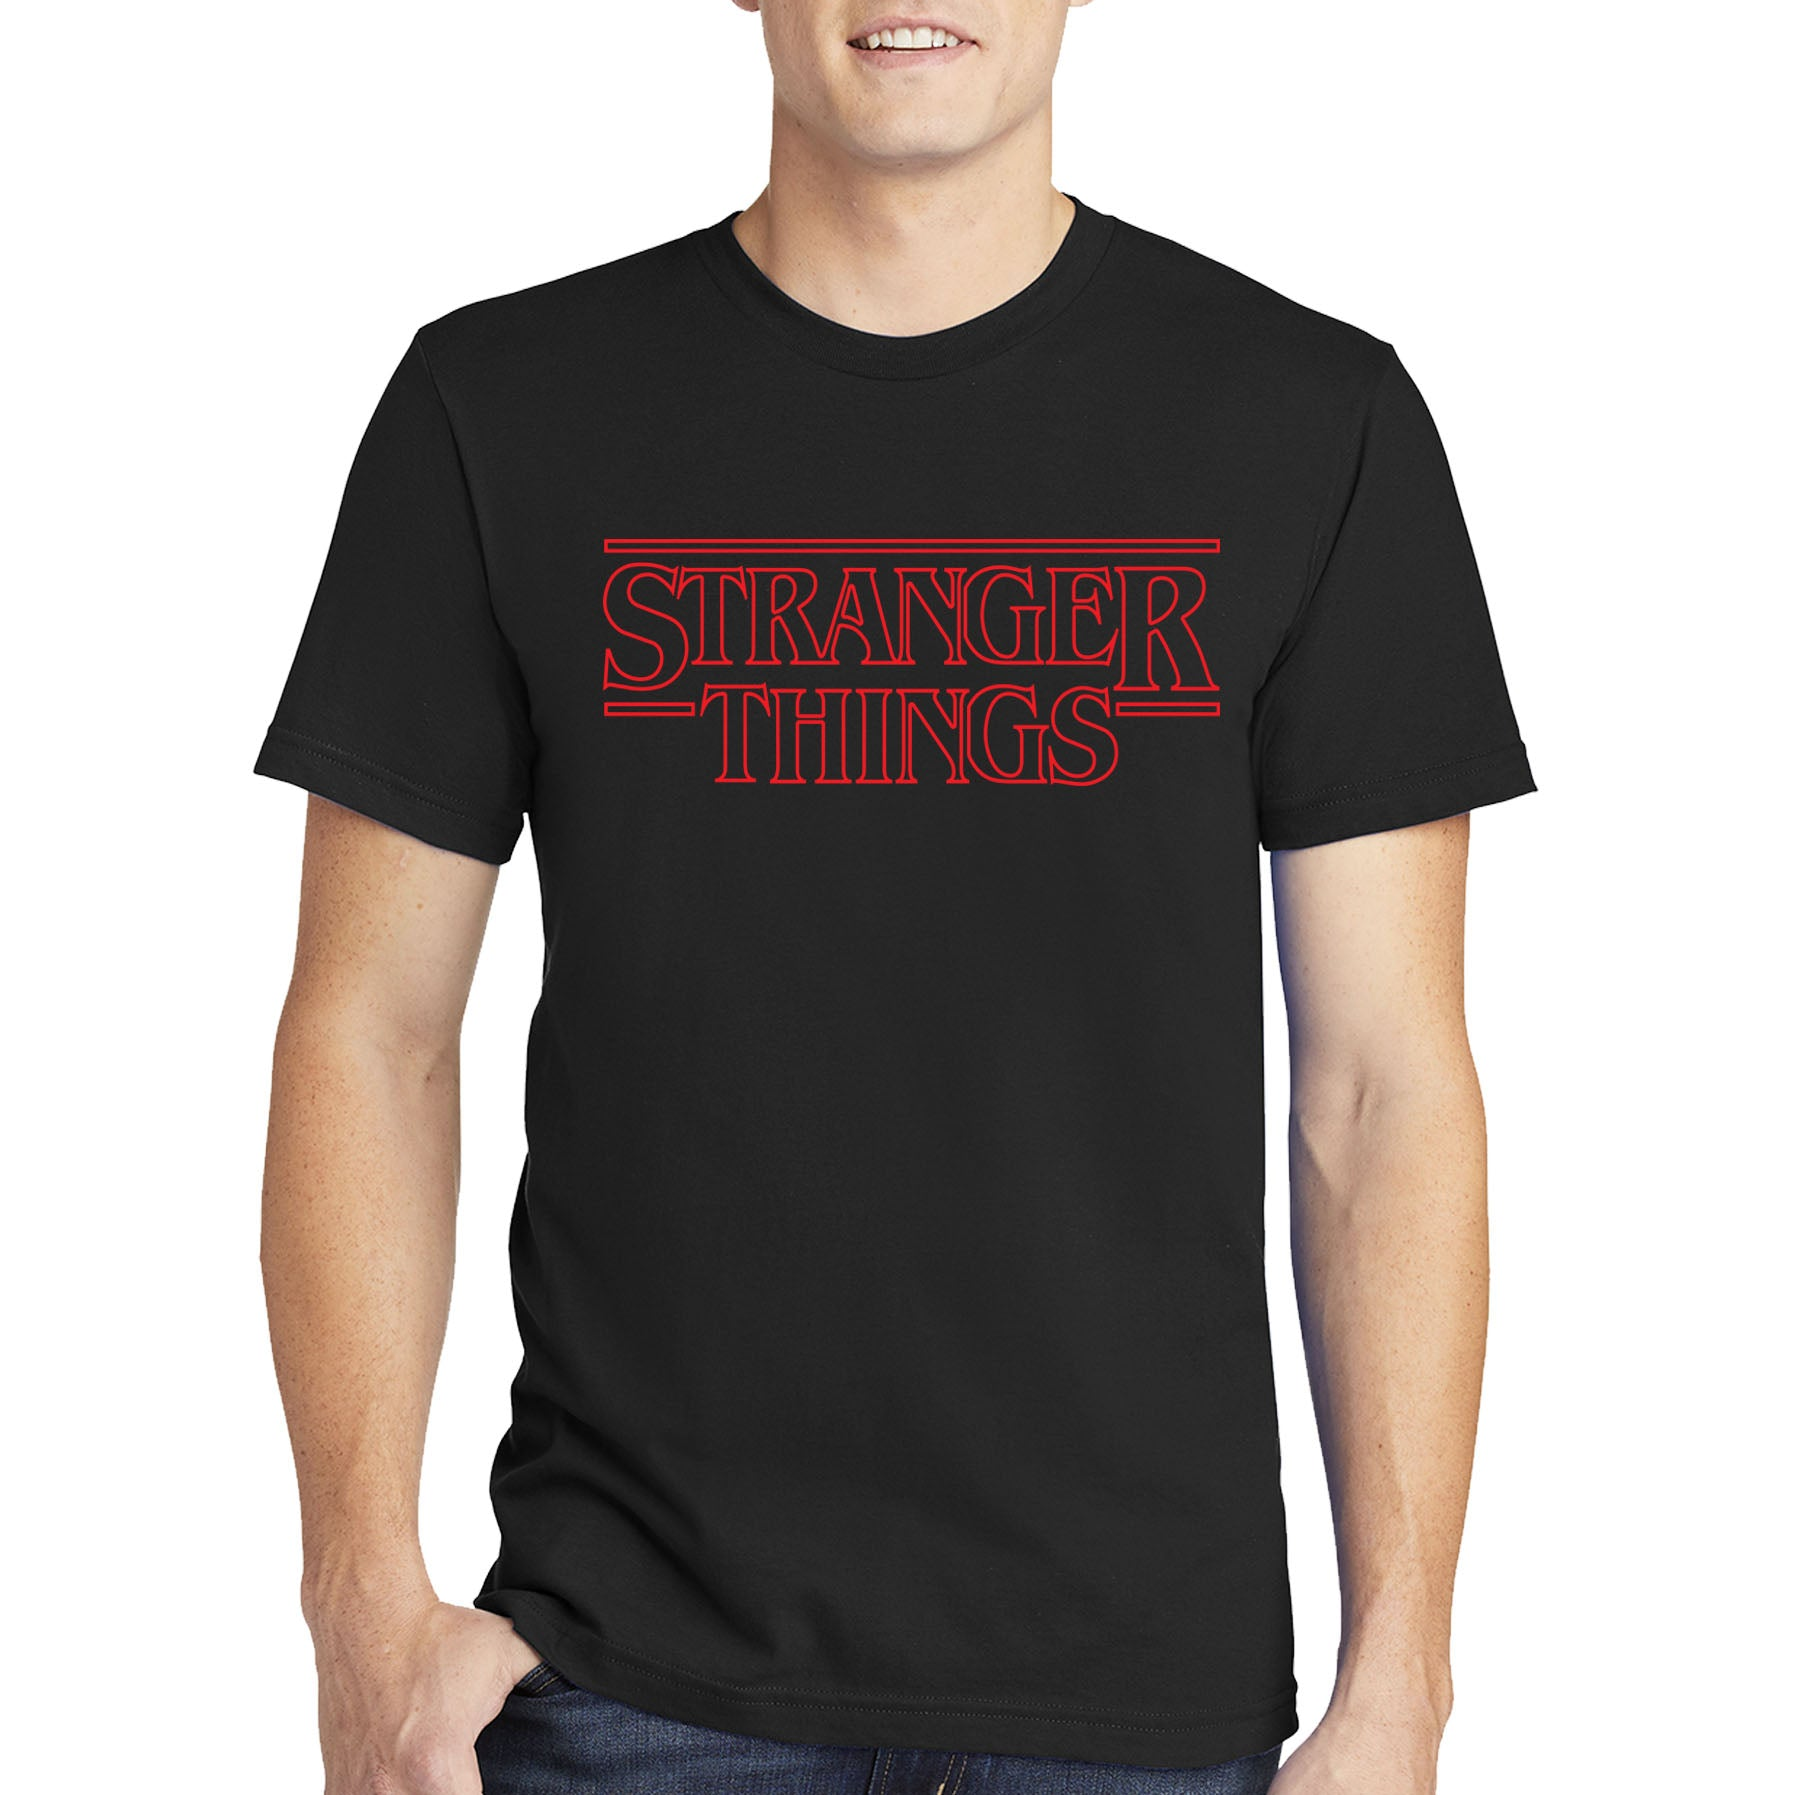 Stranger Things T-shirt Logo